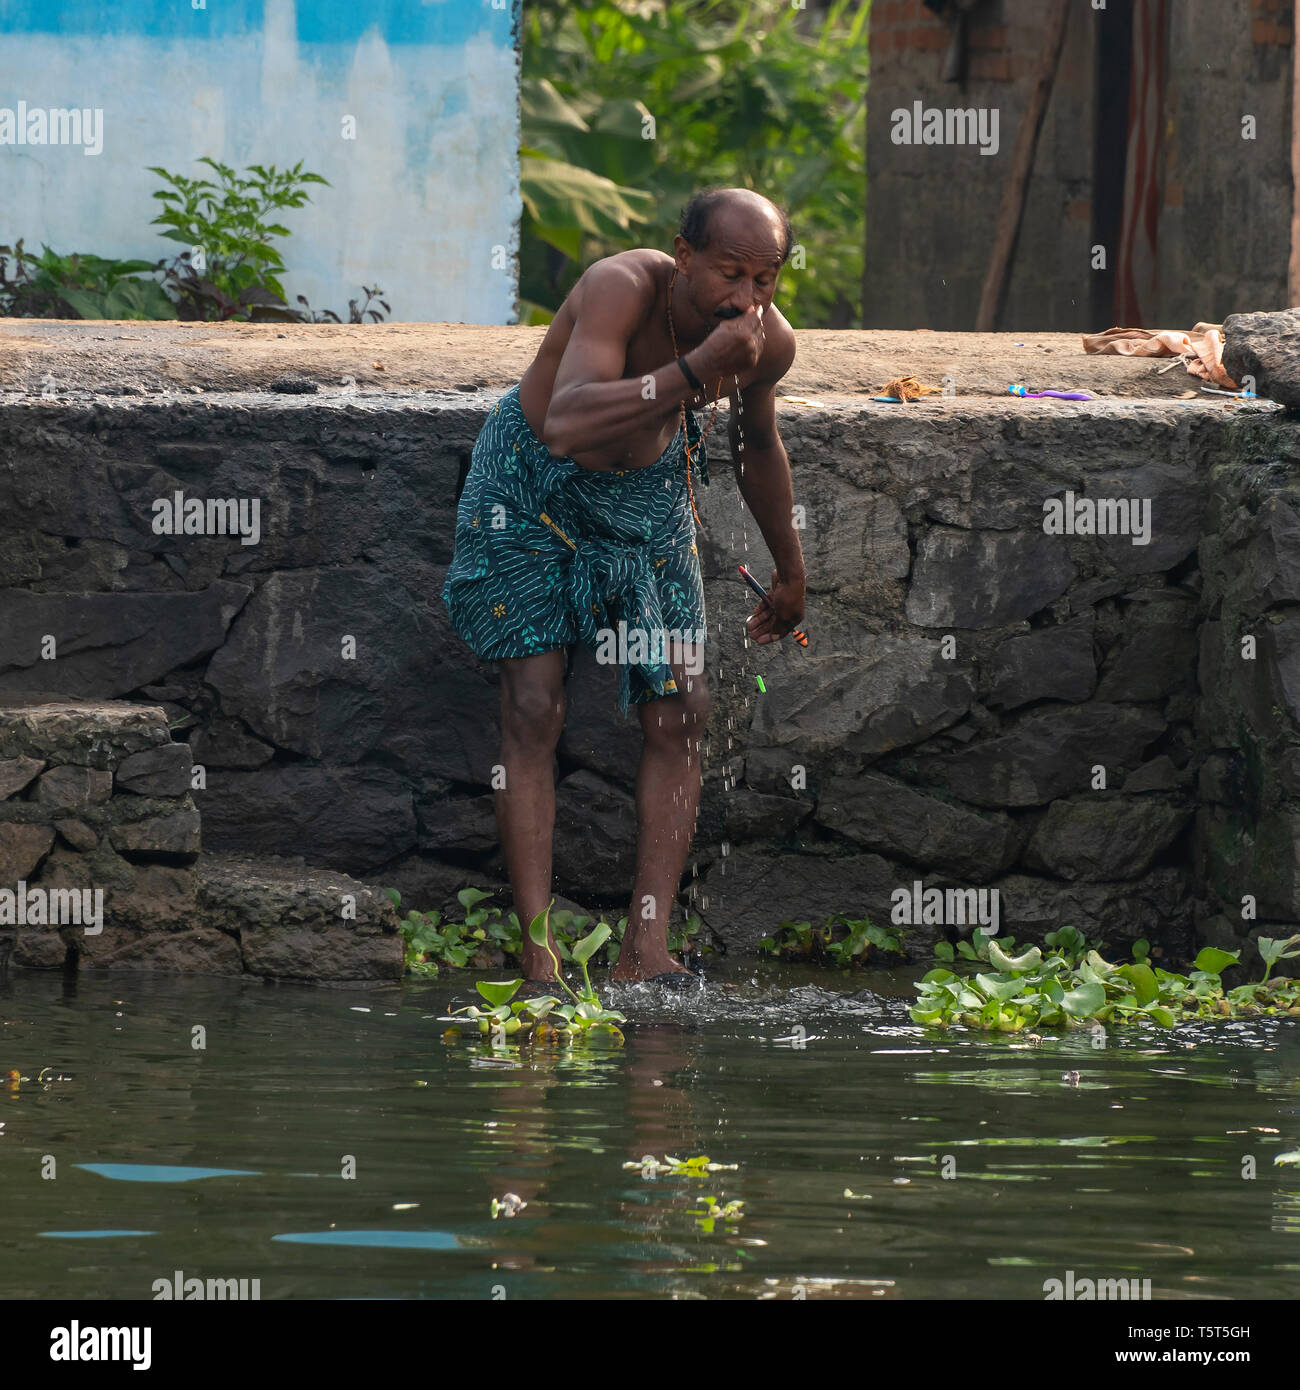 Square portrait of a man having a wash on the riverbank in Alleppy, India - Stock Image